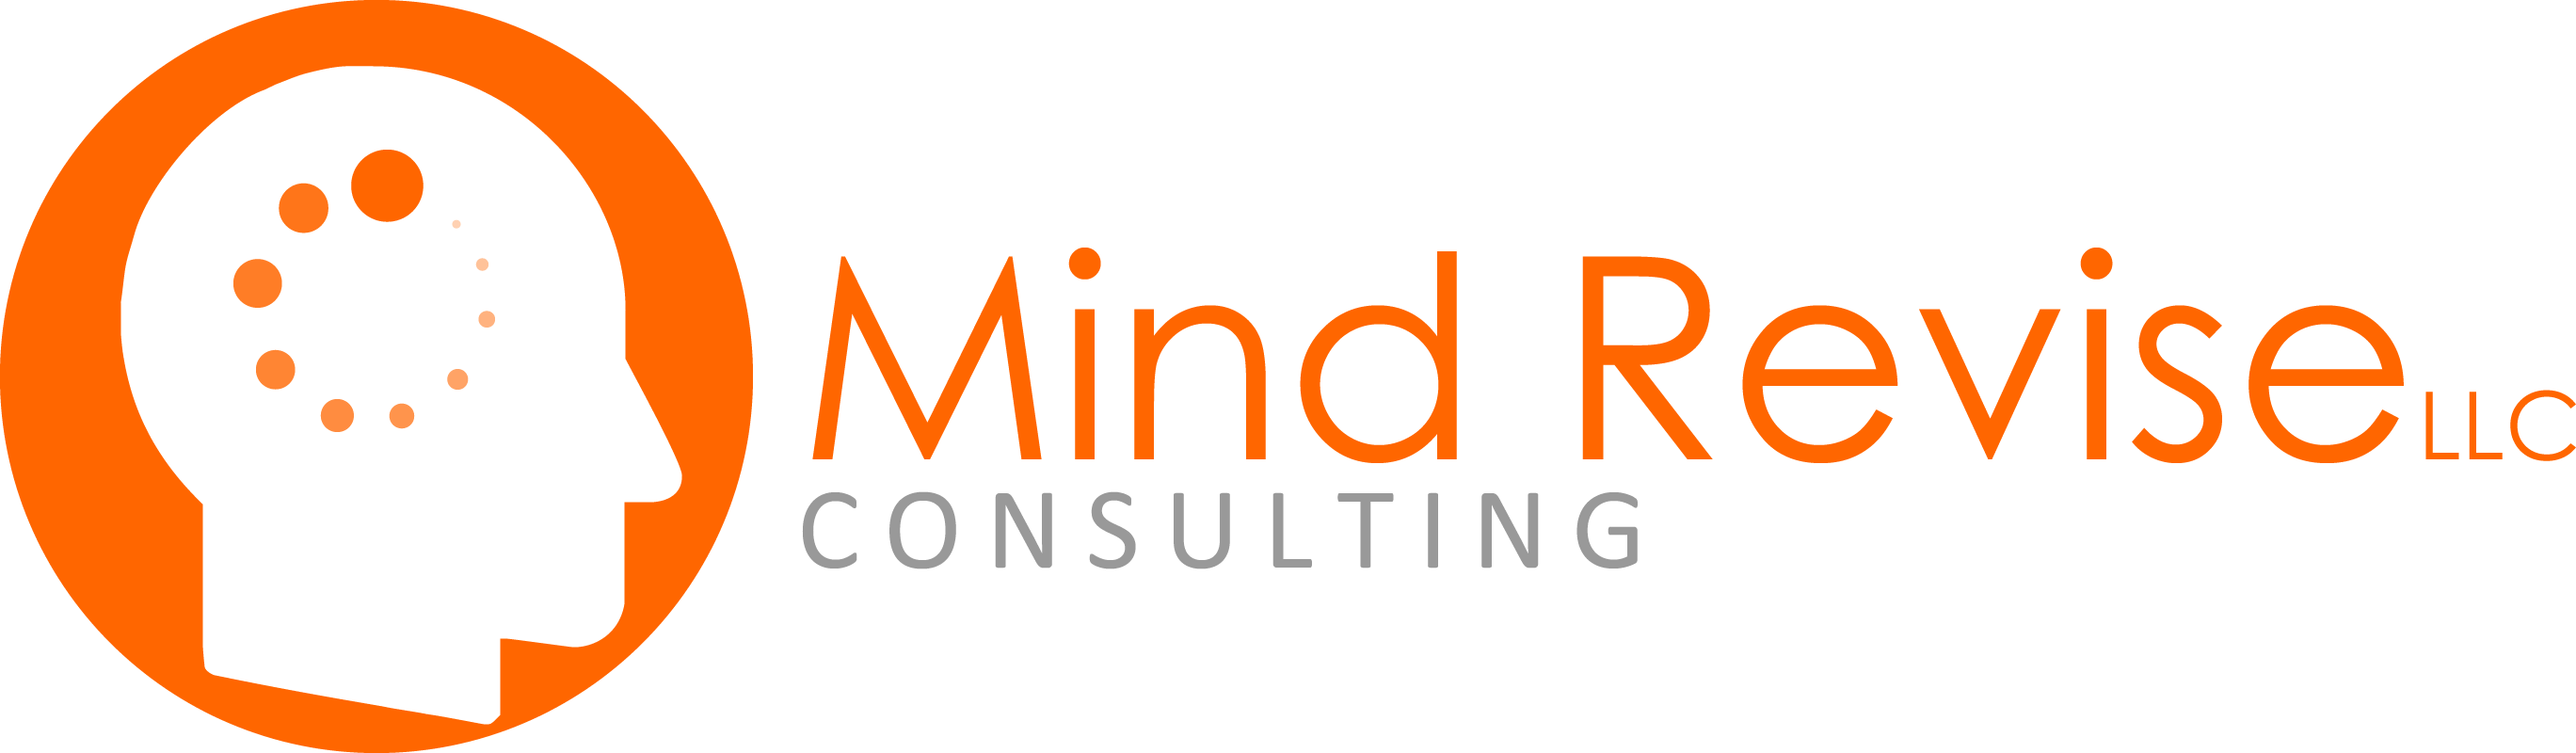 Mind Revise Consulting LLC